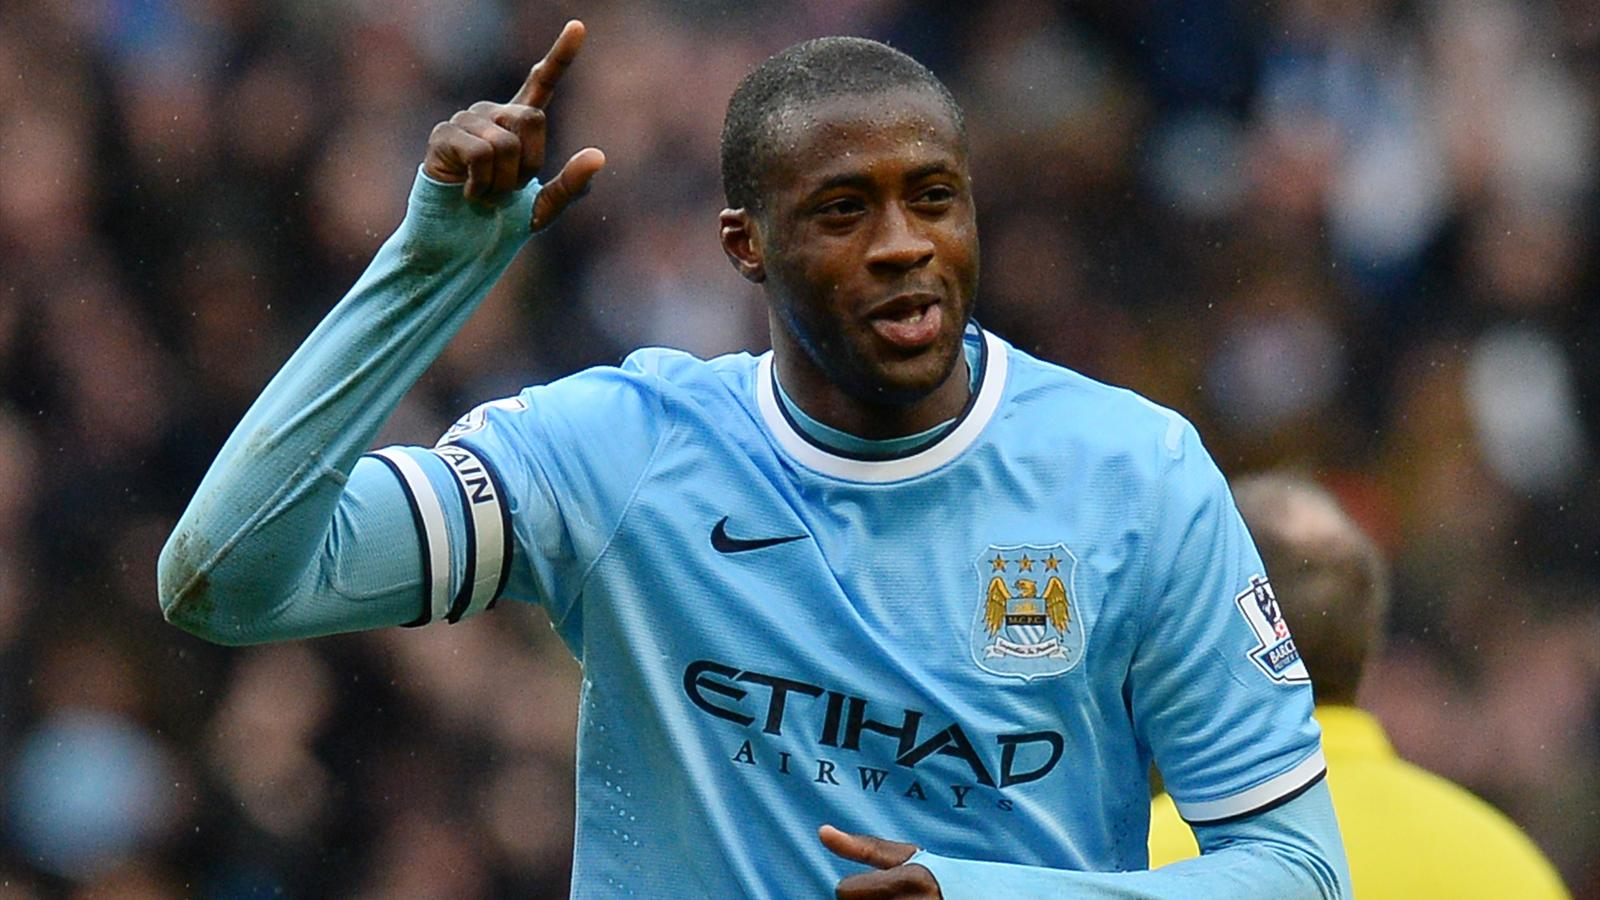 Yaya Touré celebrates with Manchester City - season 2013-2014